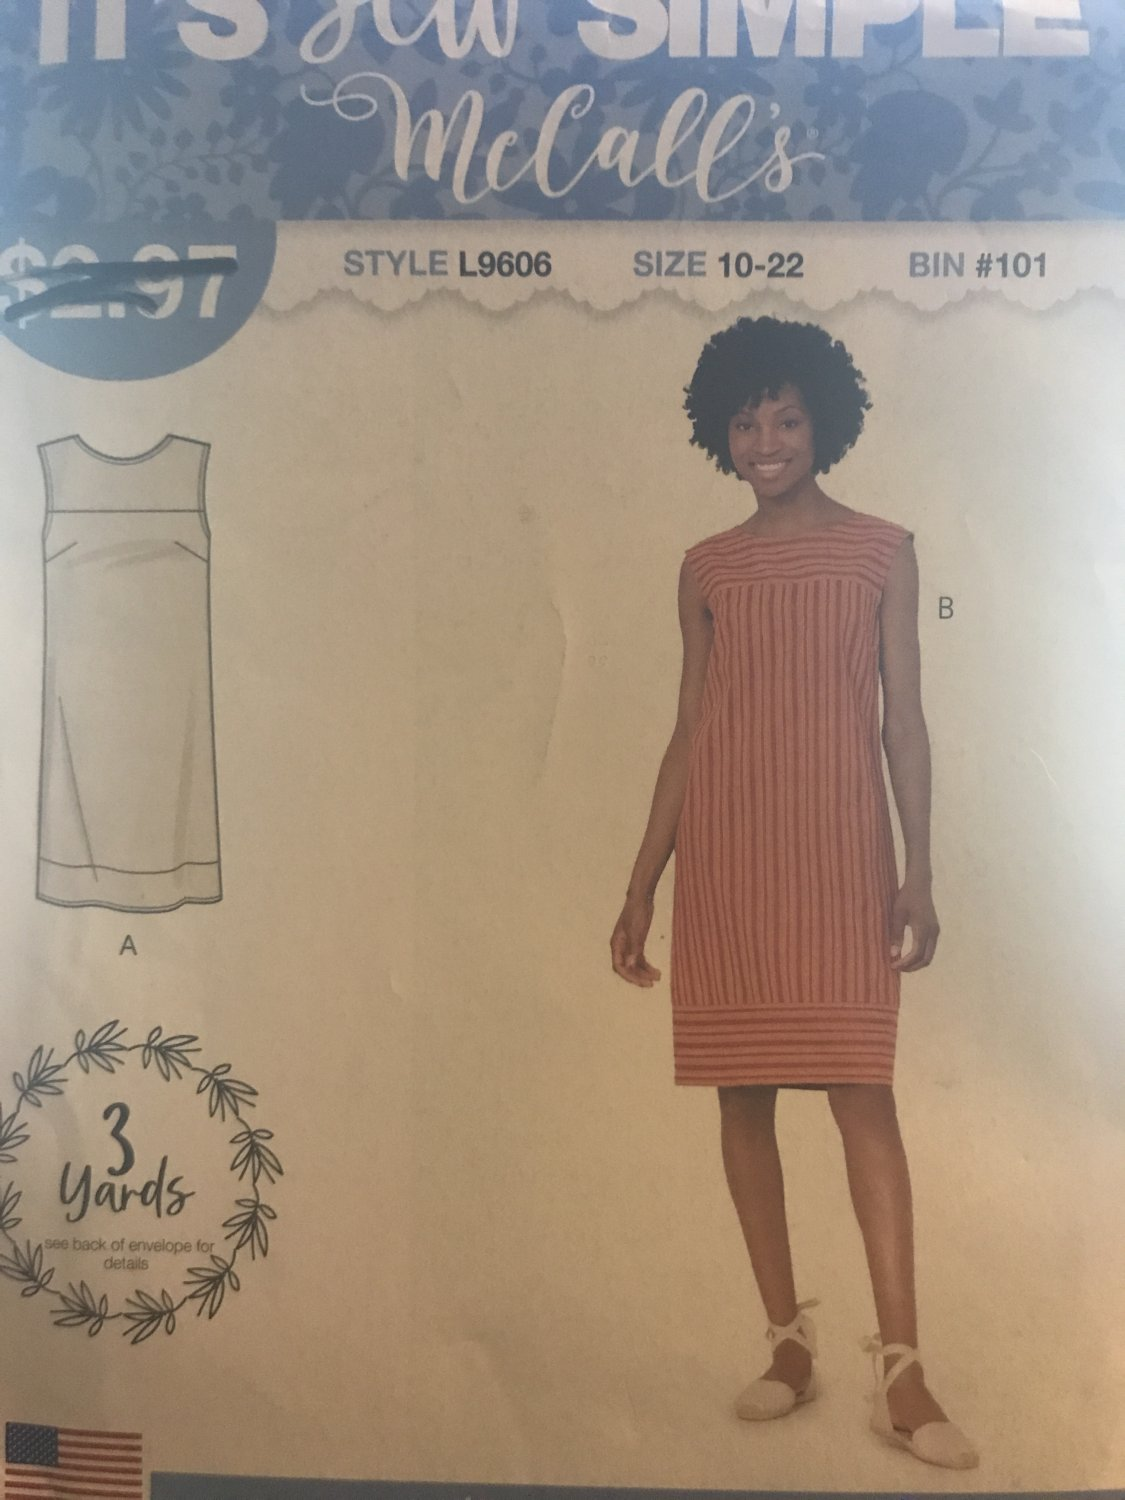 McCall's 9606 L9606 Misses Sew Simple Summer Sleeveless Dress  Size 10 - 22 Sewing Pattern